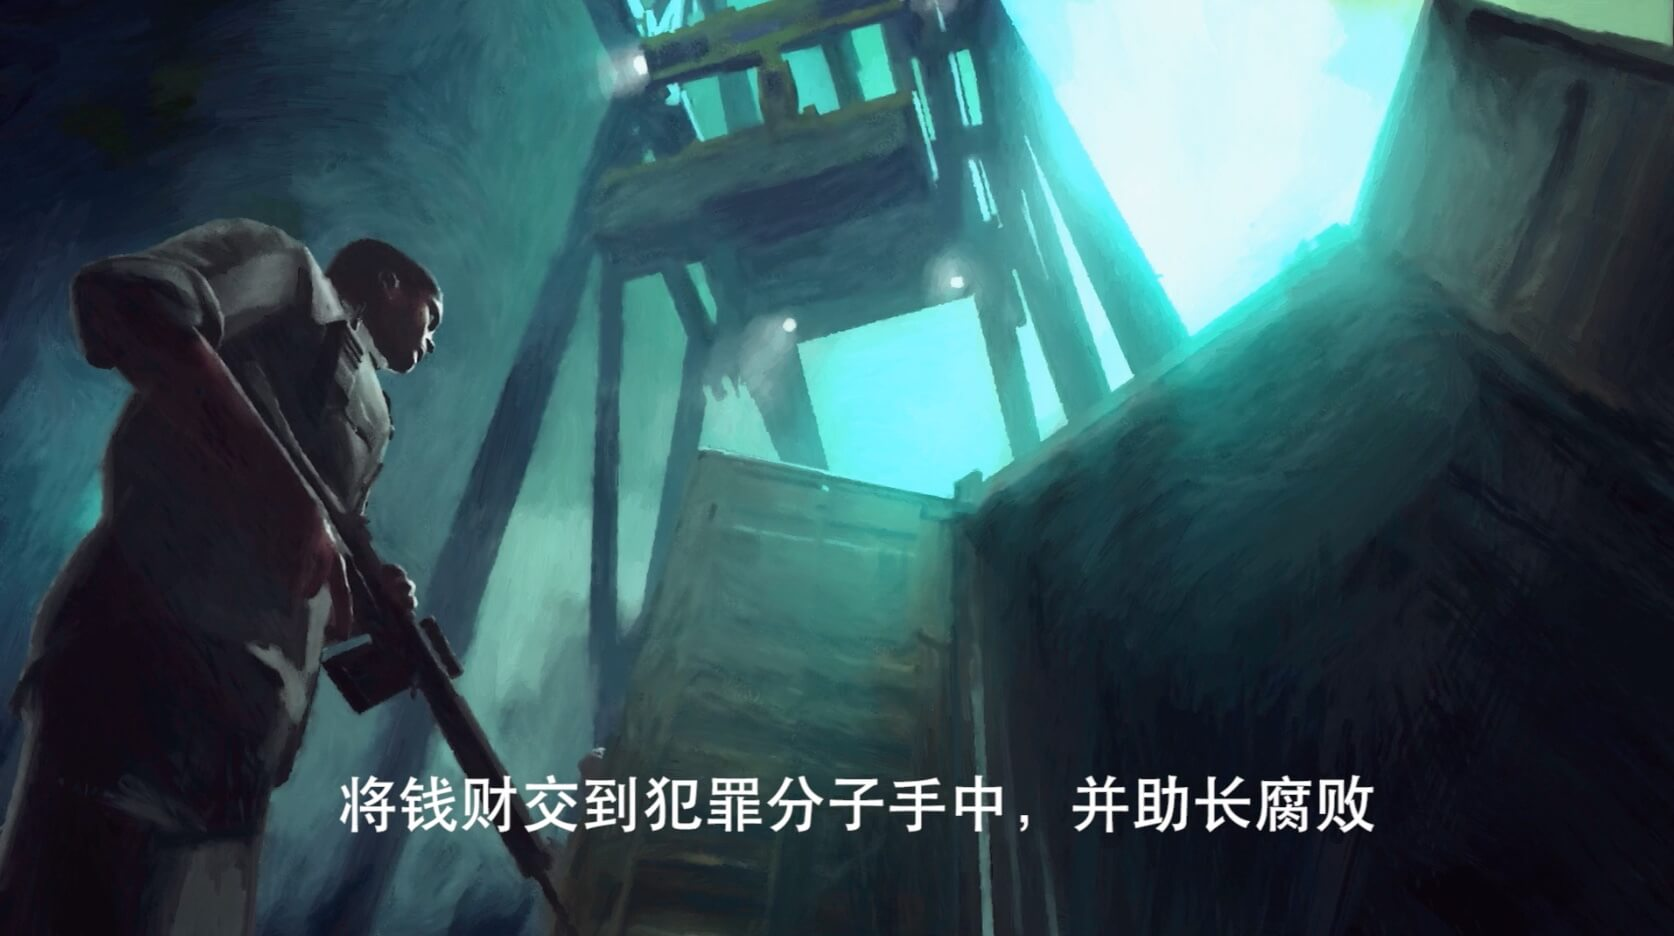 Chinese subtitling